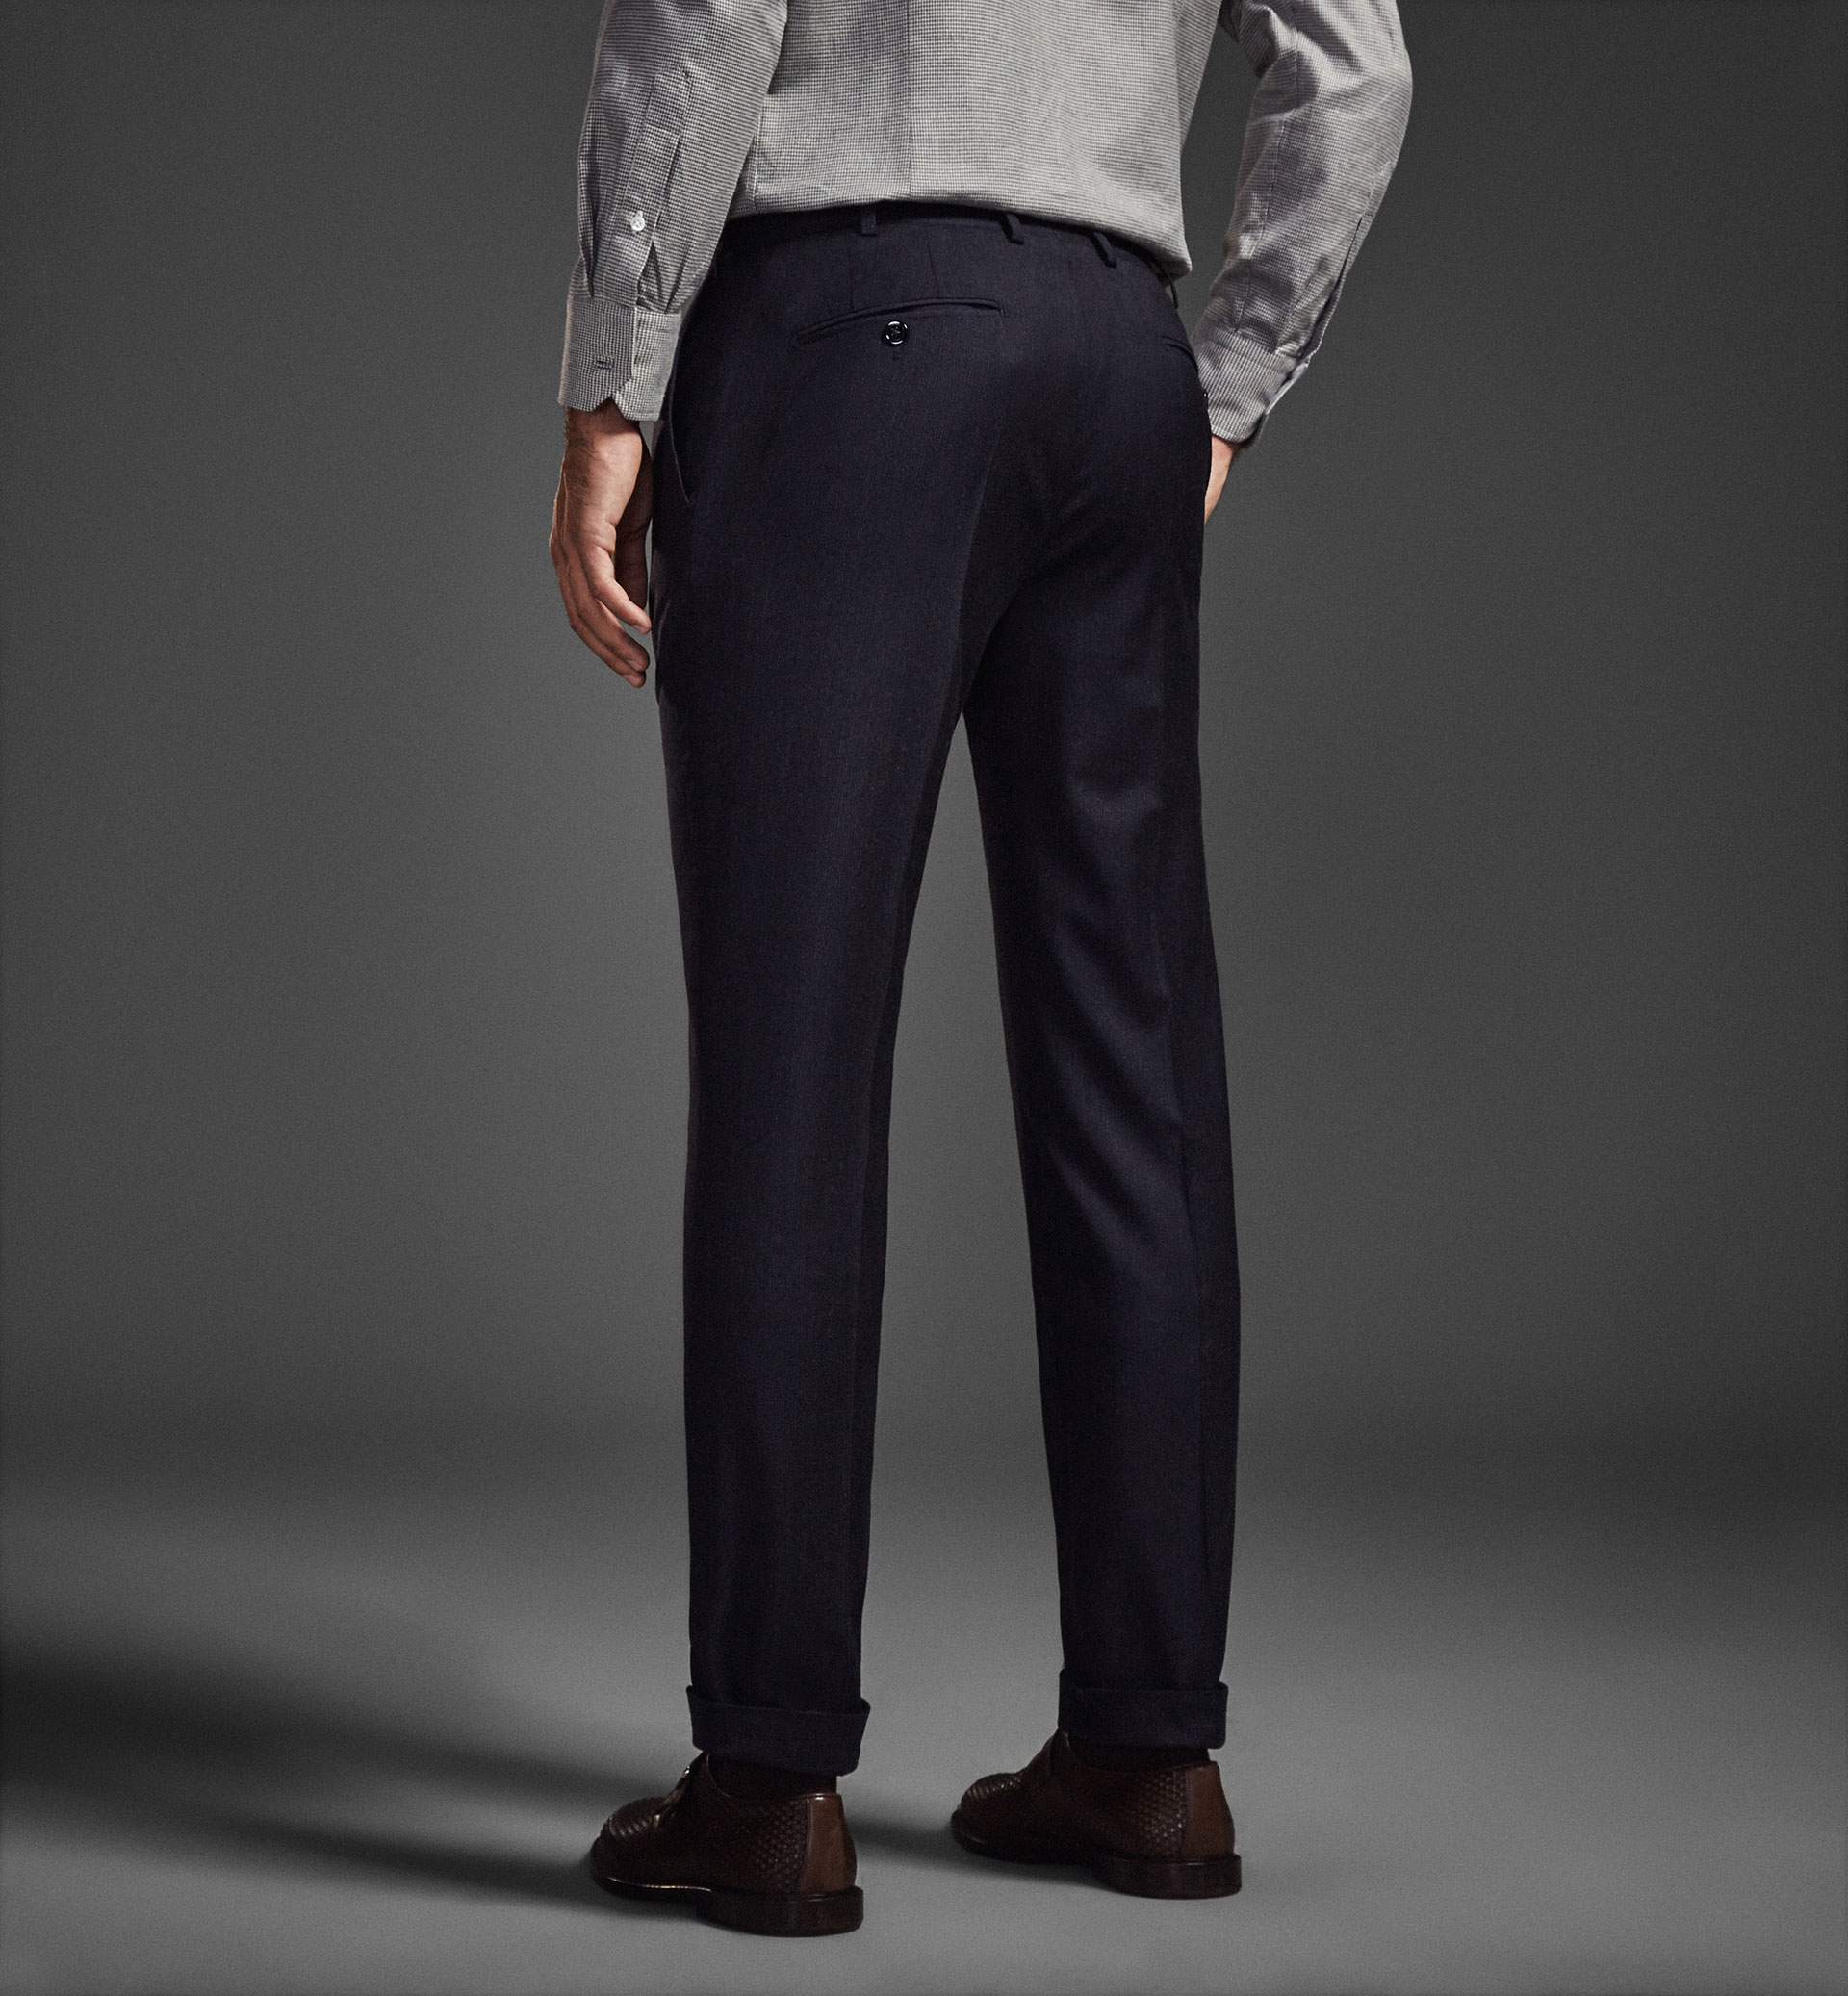 LIMITED EDITION PINSTRIPE WOOL TROUSERS